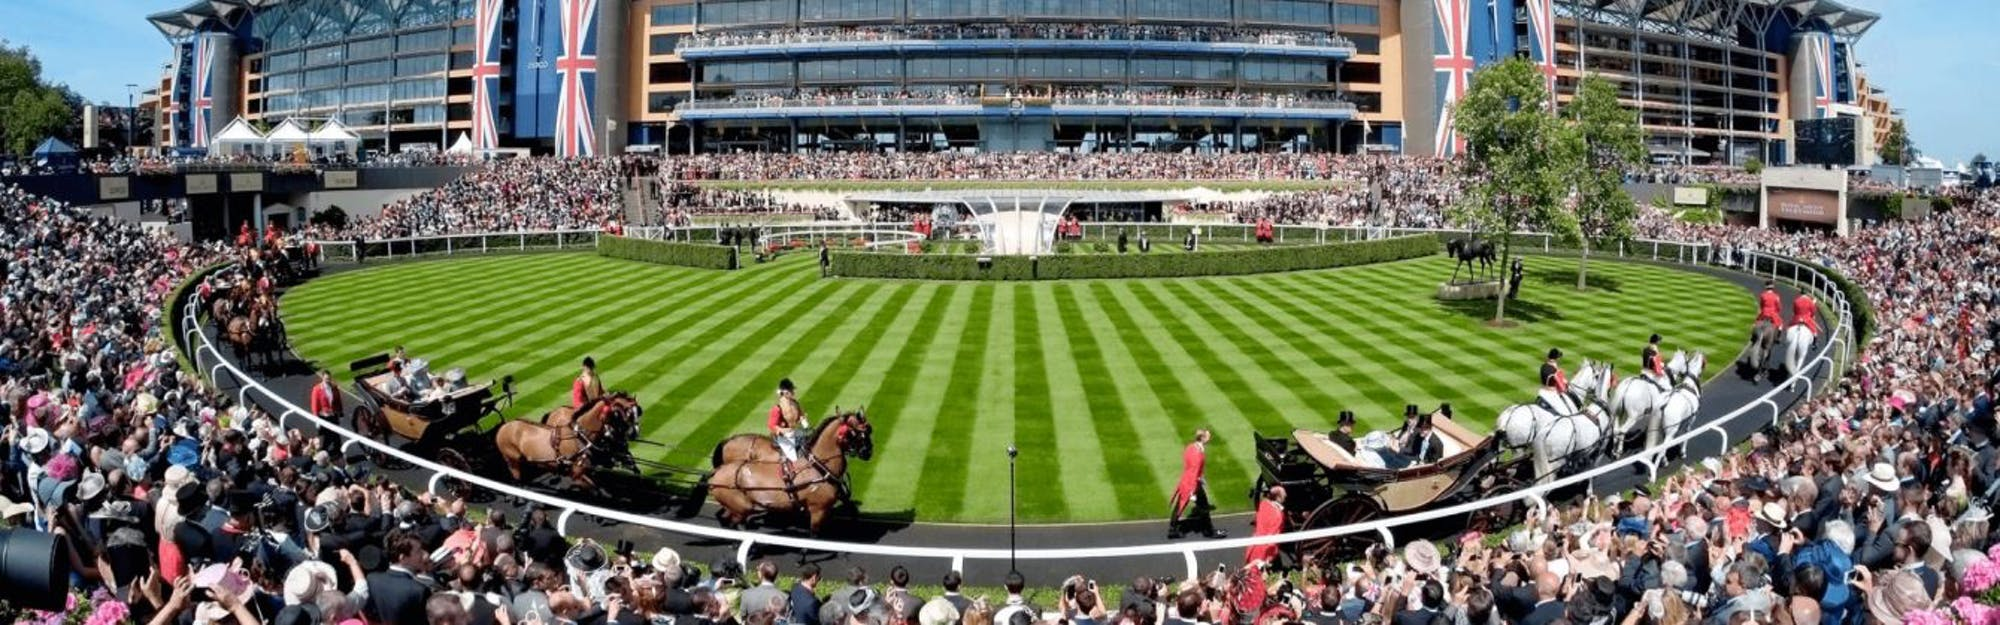 The Virtual Royal Enclosure  with Fitzdares